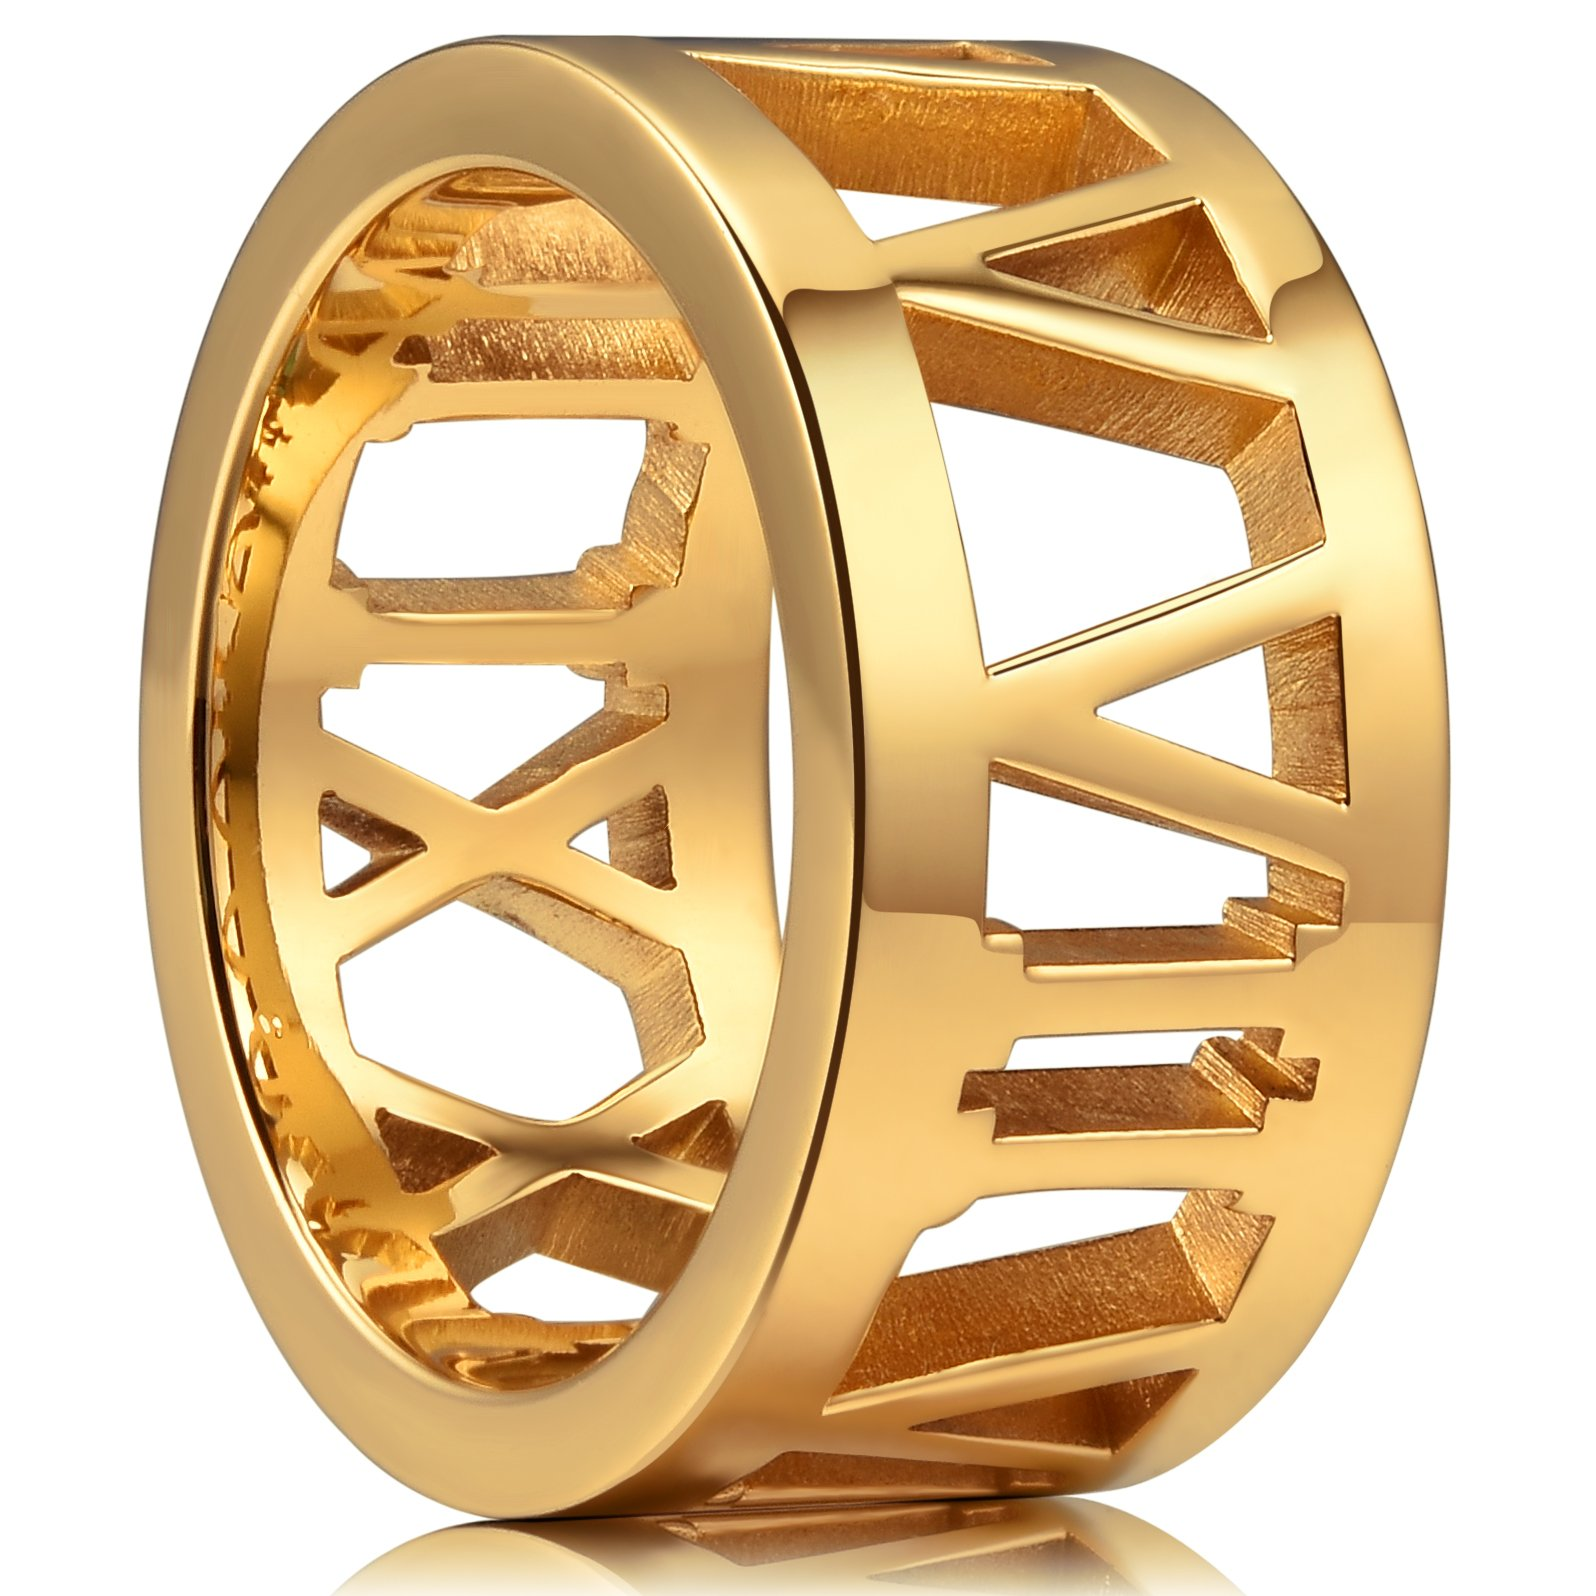 King Will TIME 10mm 316 Stainless Steel Wedding Band Gold Plated Ring with Roamn Nunber Hollow&Full High Polished(10)